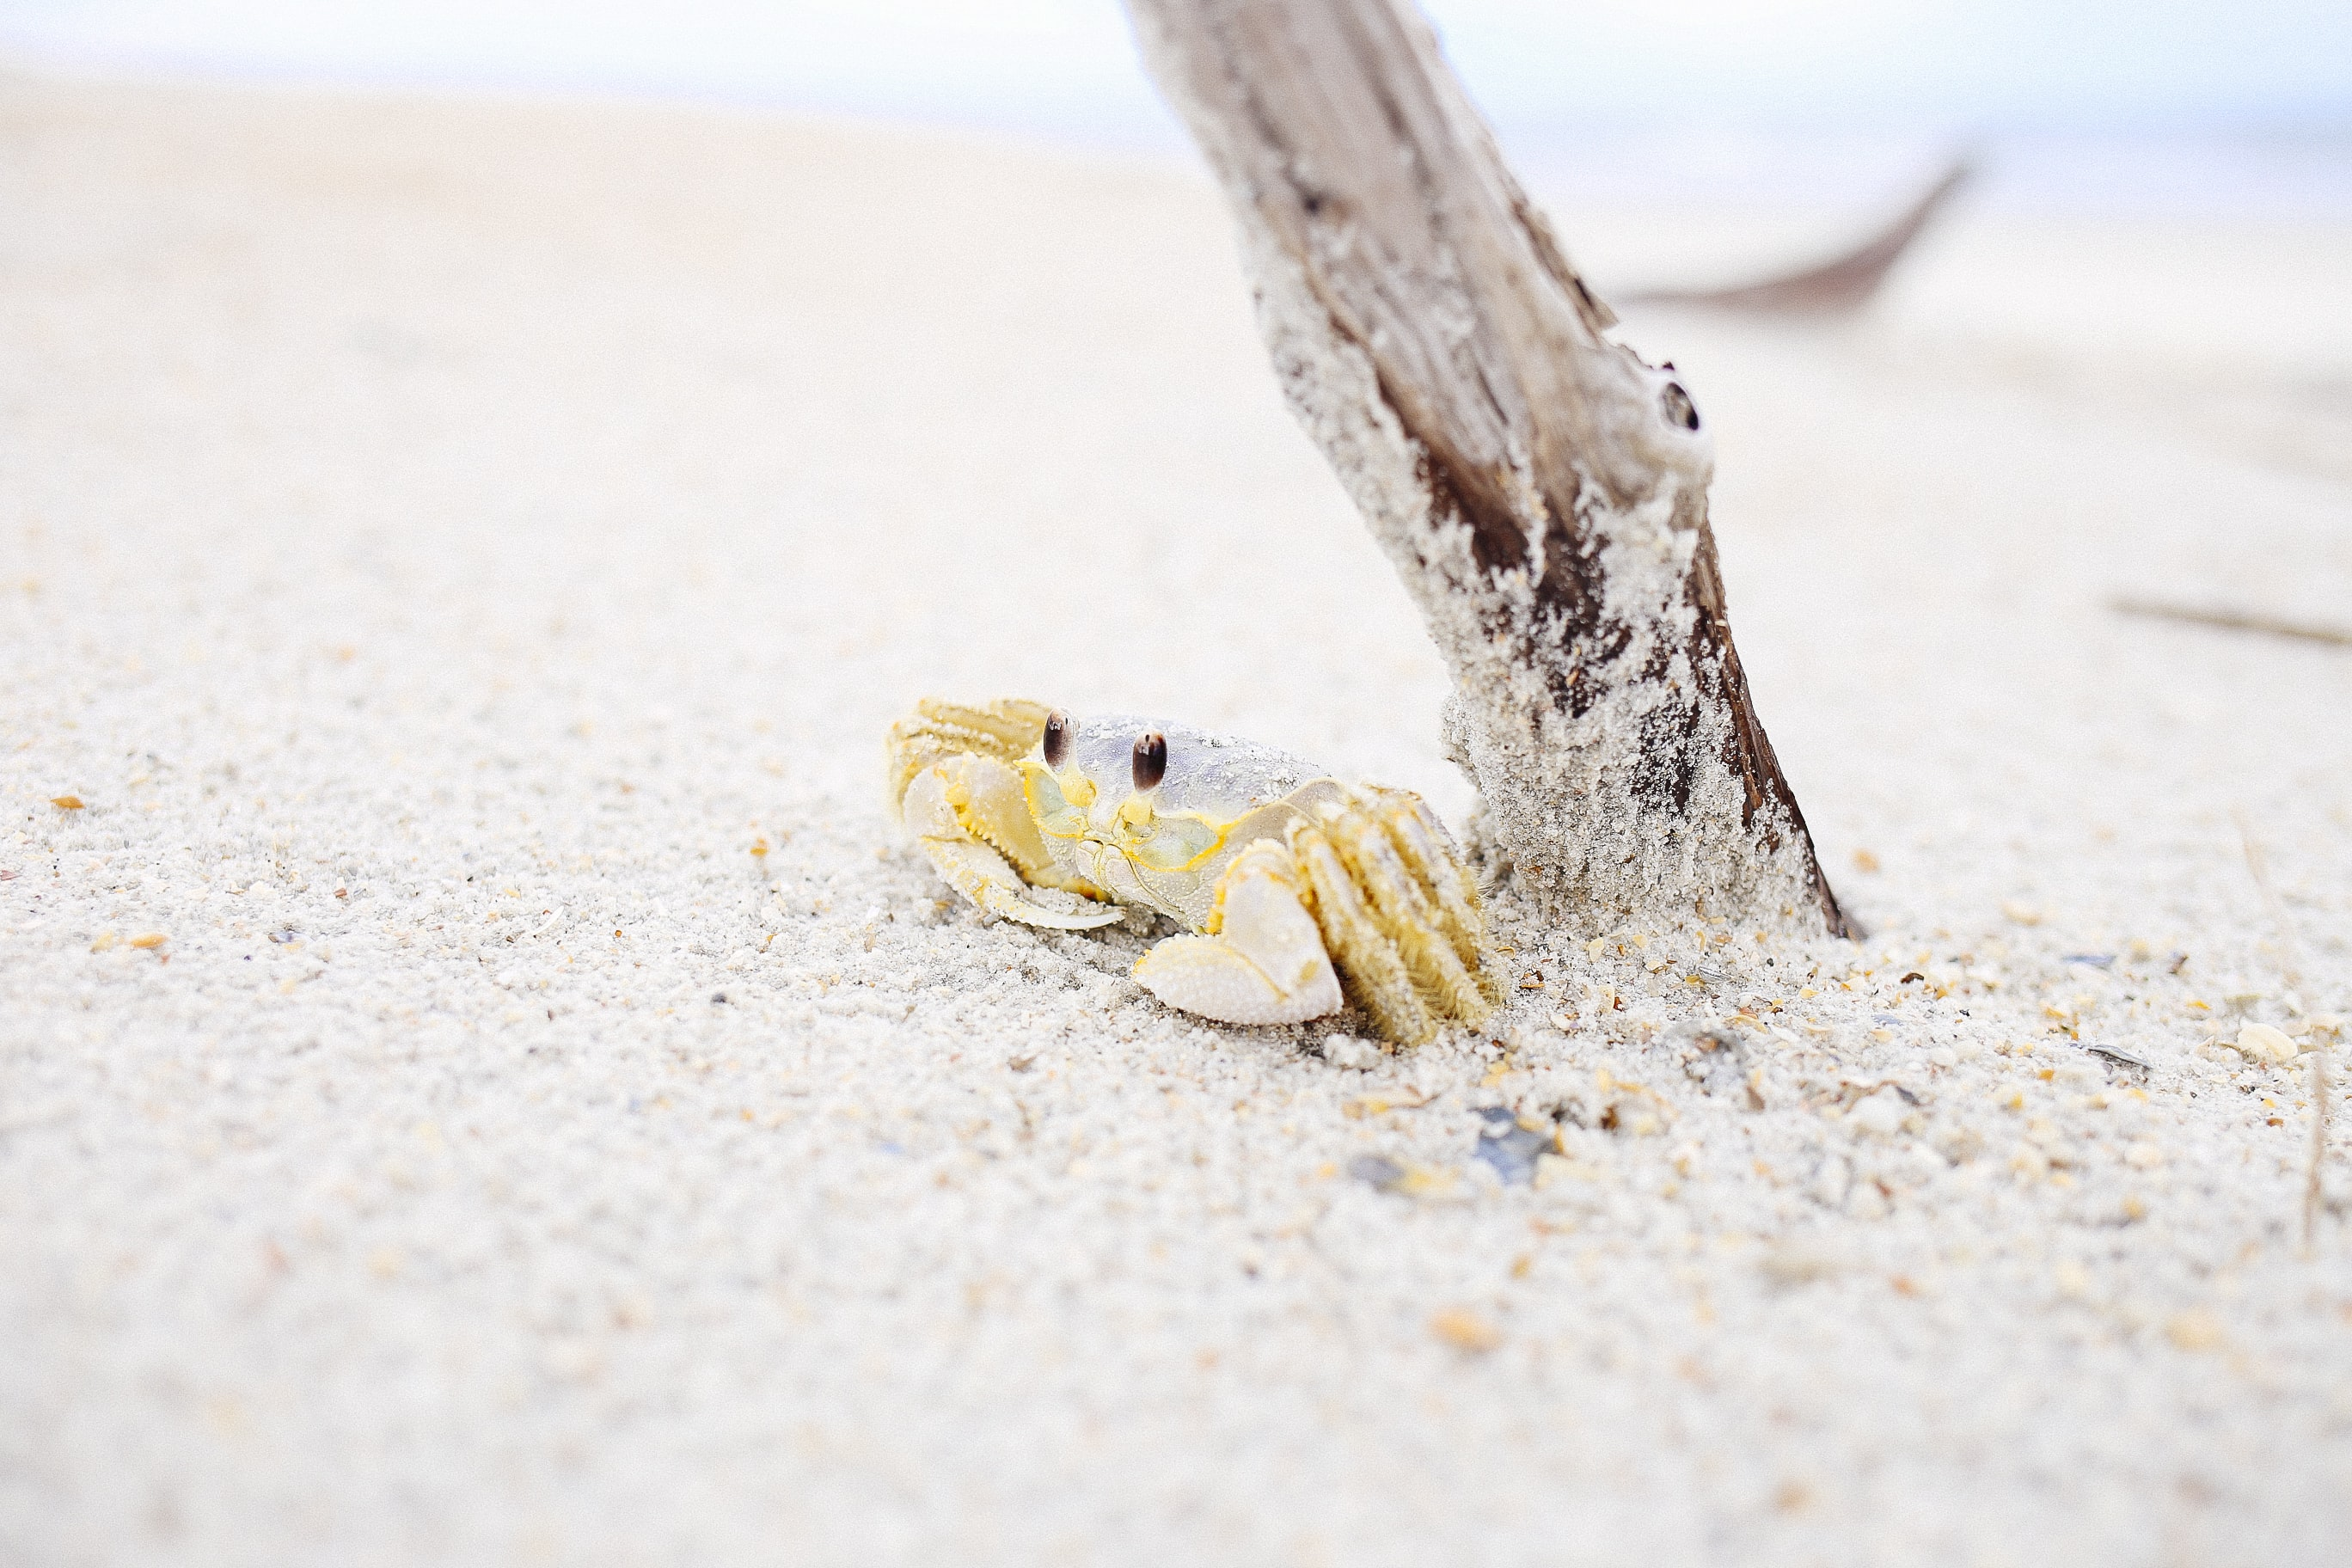 Small crab on the white sand beach by the driftwood